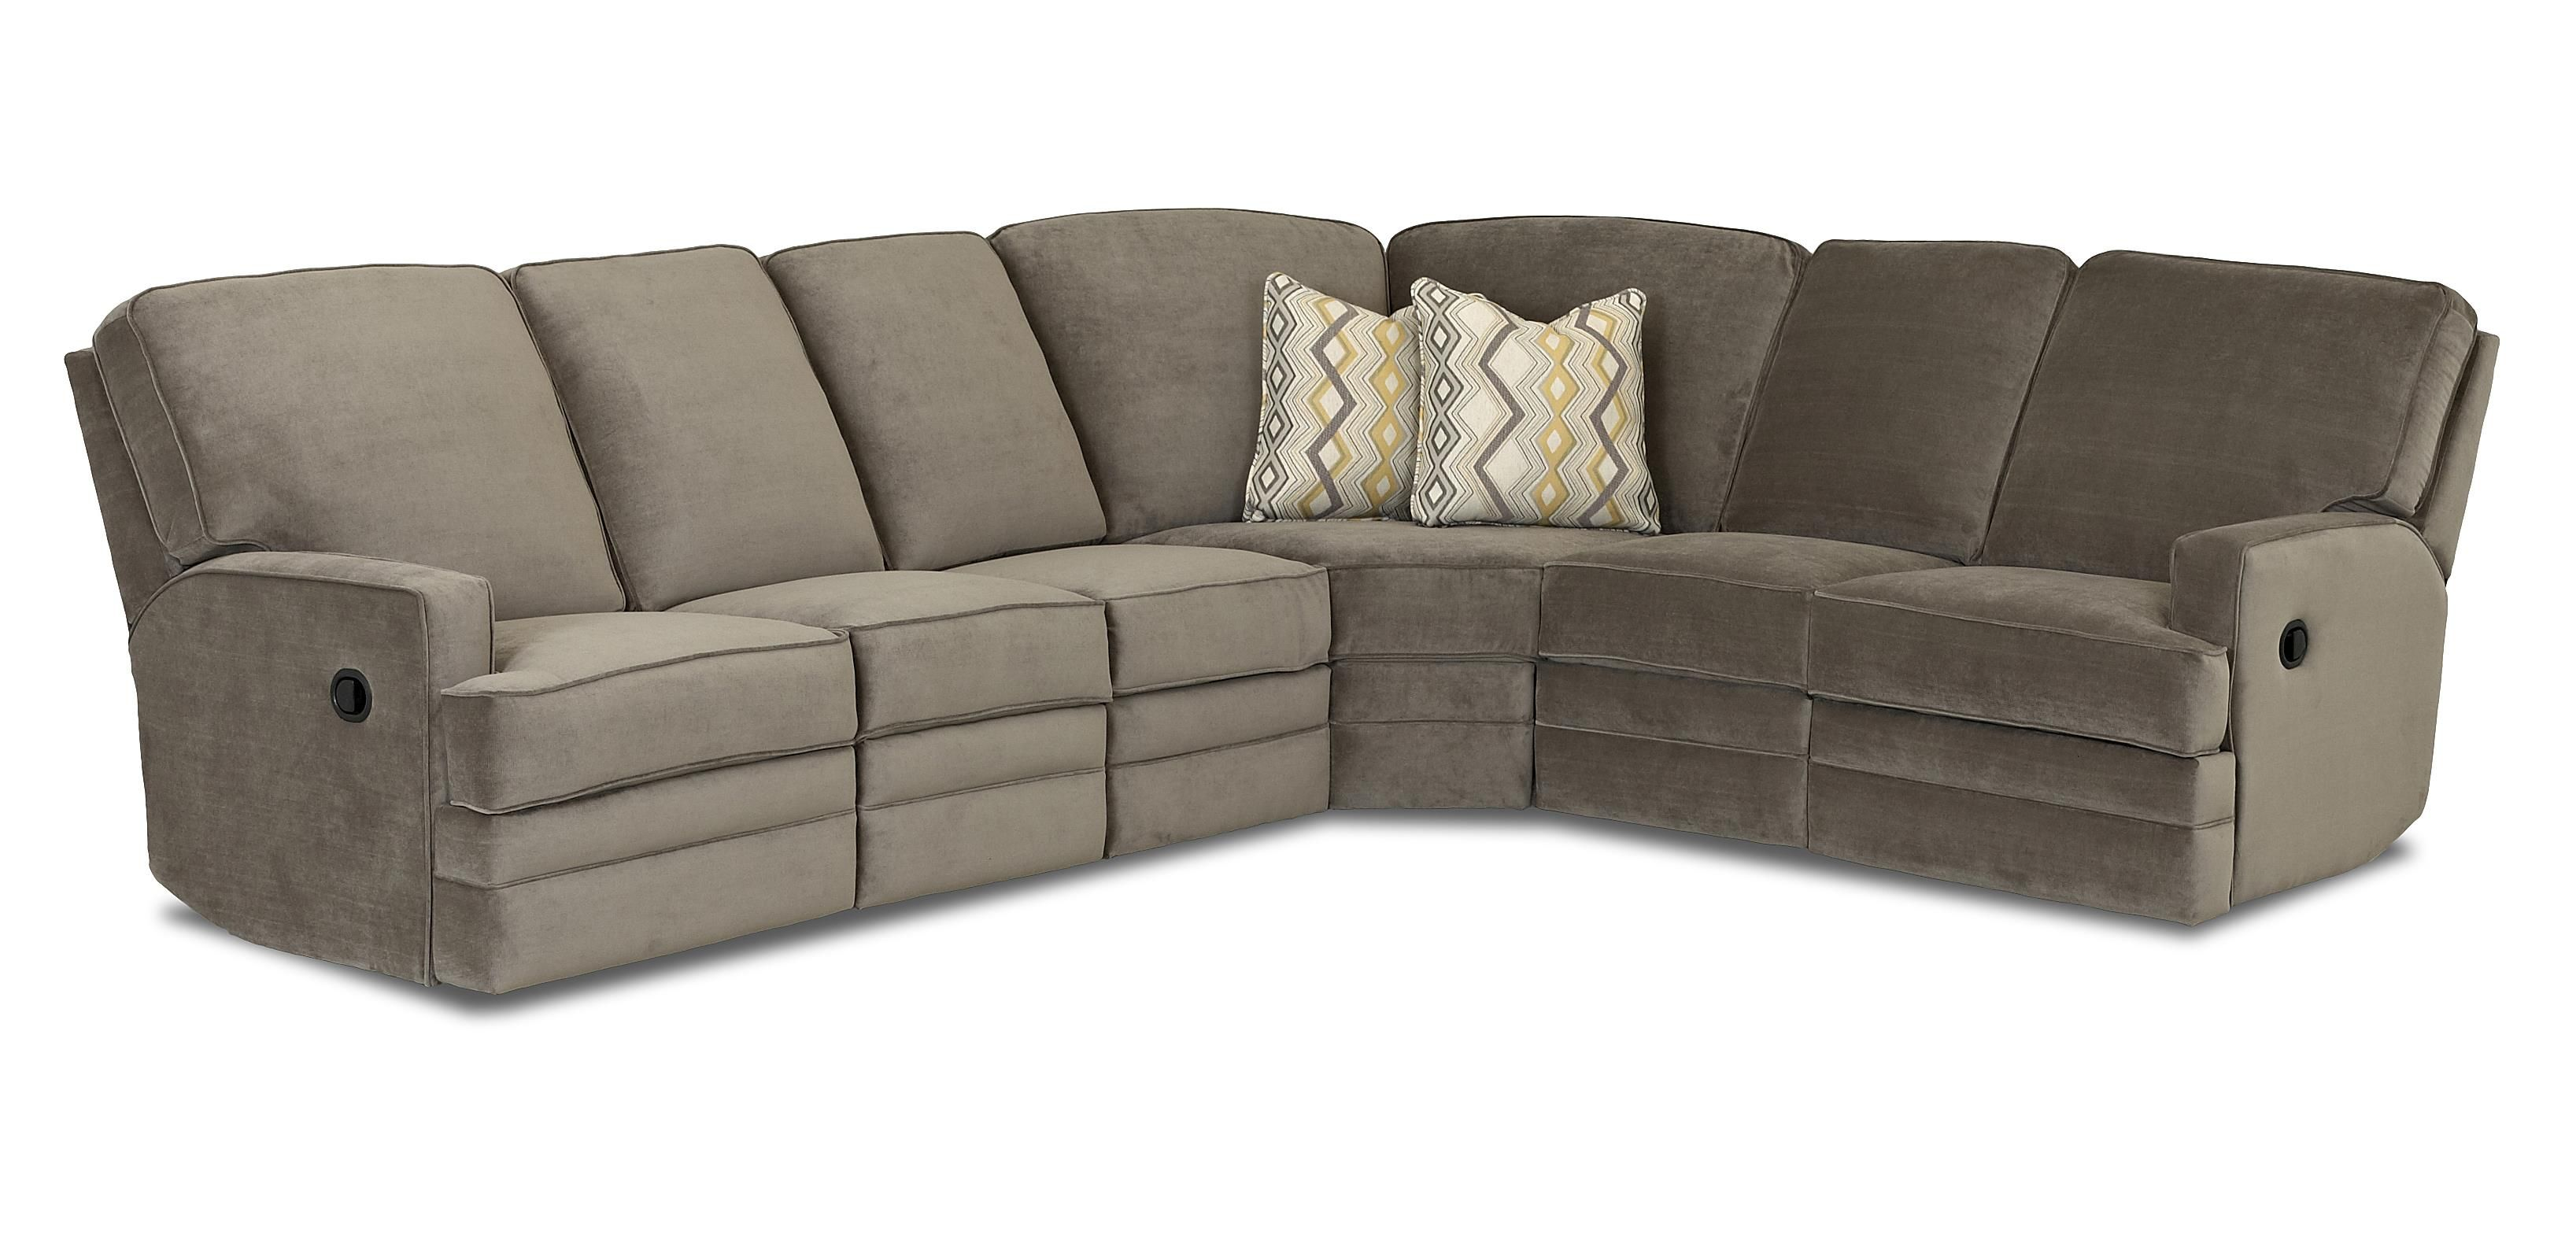 klaussner grand power reclining sofa mid century modern nyc chapman casual sectional by